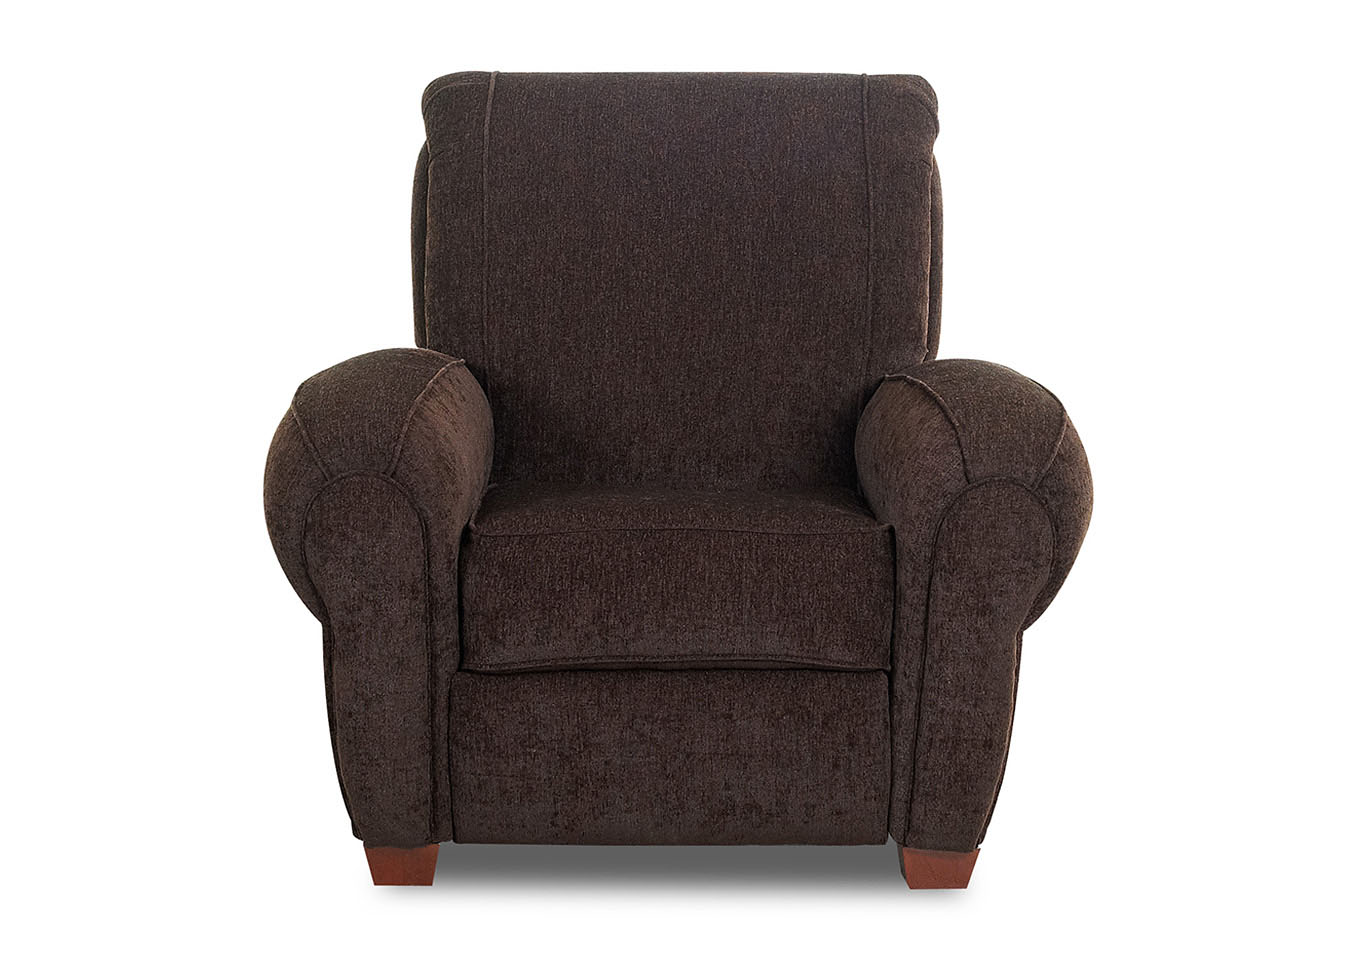 Cigar Reclining Fabric Chair,Klaussner Home Furnishings